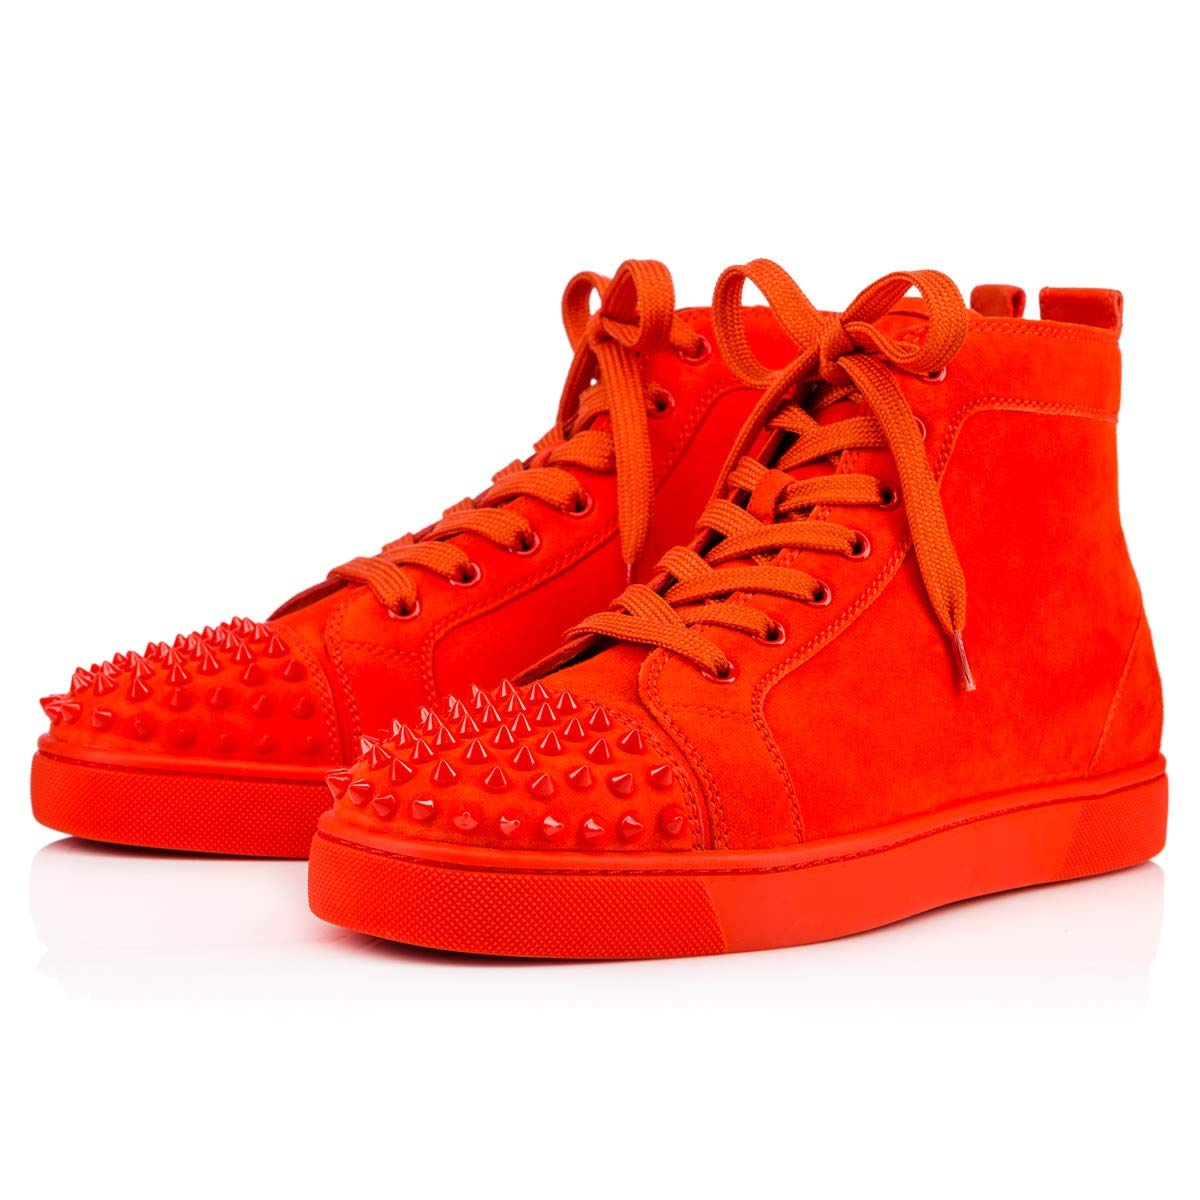 new arrival 3b1f0 dd4c6 Amazon.com | Christian Louboutin Authentic Lou Spikes Suede ...